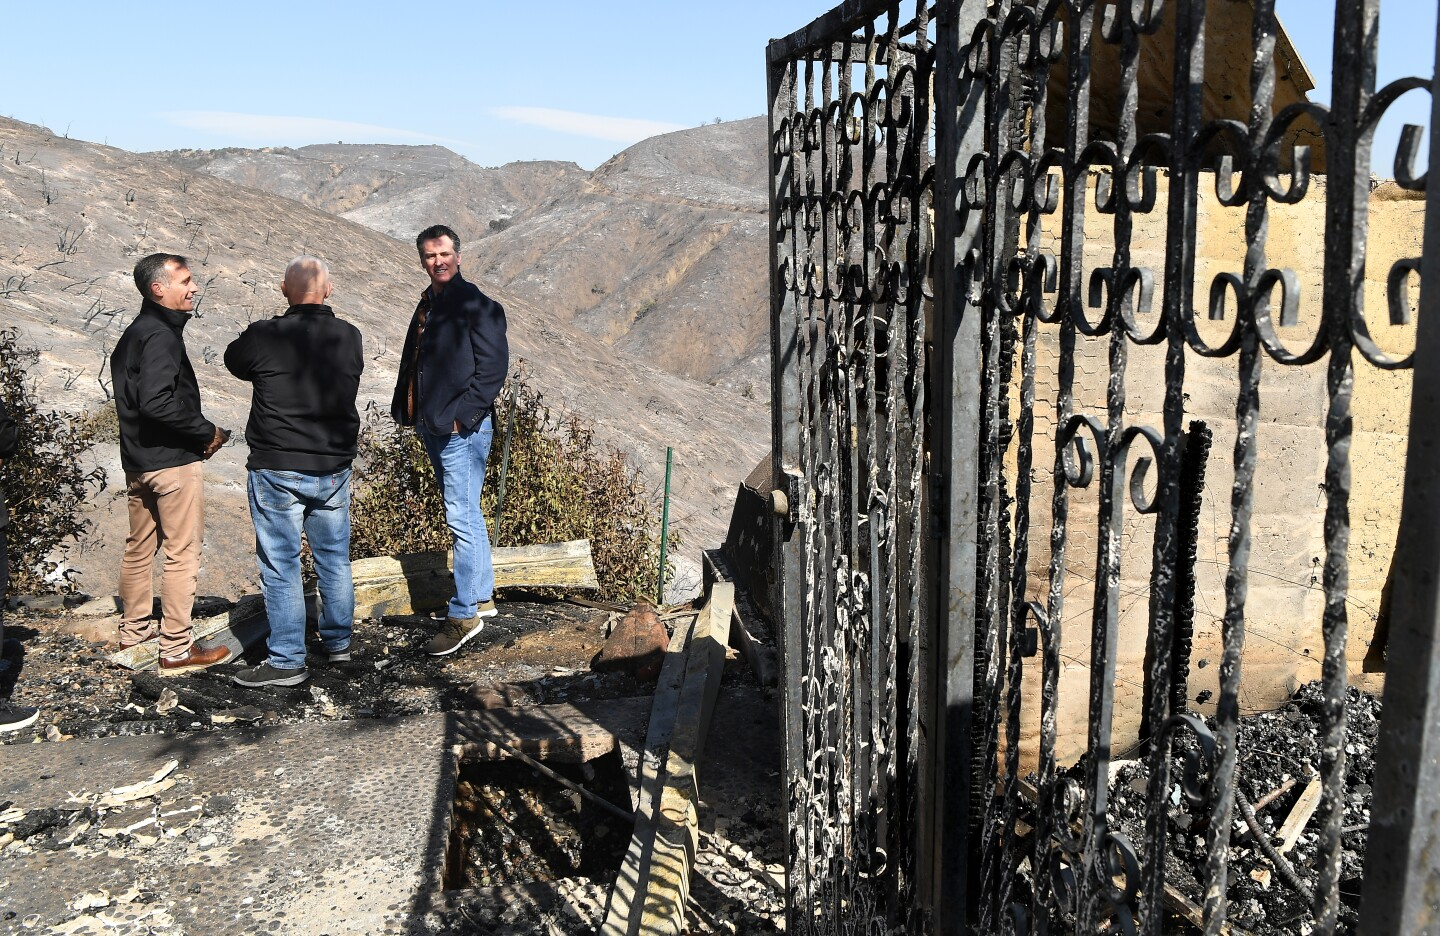 BRENTWOOD, CALIFORNIA OCTOBER 29, 2019-From left, L.A. Mayor Eric Garcetti, L.A. City Councilman Mike Bonin and California Governor Gavin Newsom view a burned and home along Tigertail Road in Brentwood Tuesday. (Wally Skalij/Los Angeles Times)